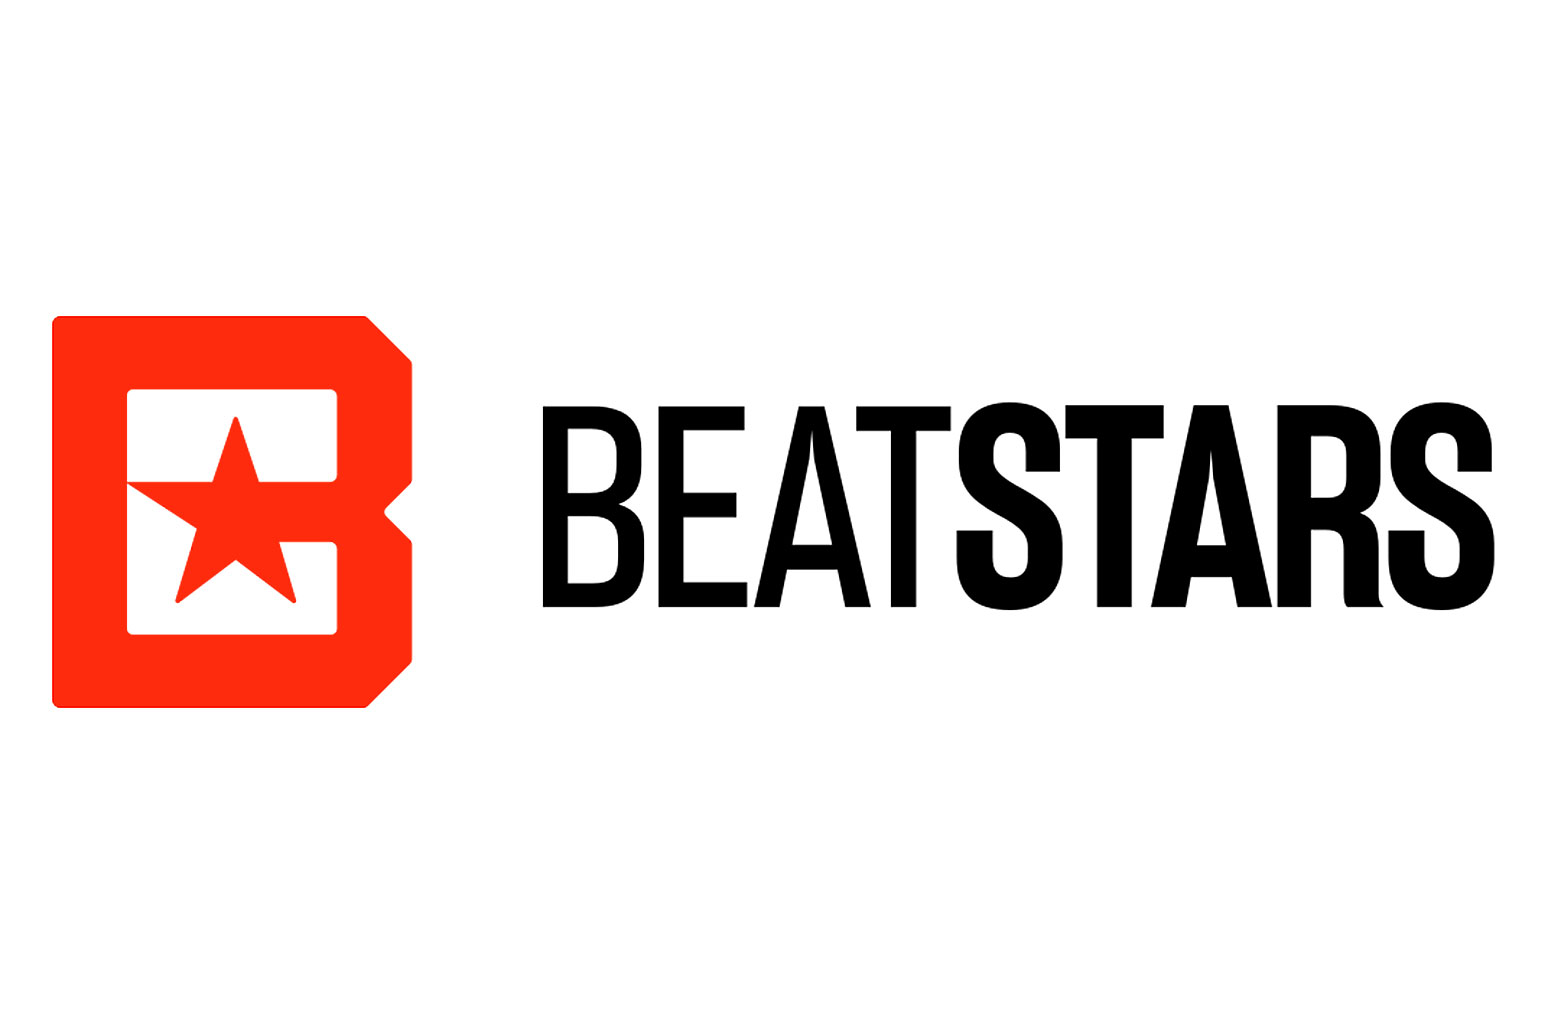 Beat Stars coupons and promo codes